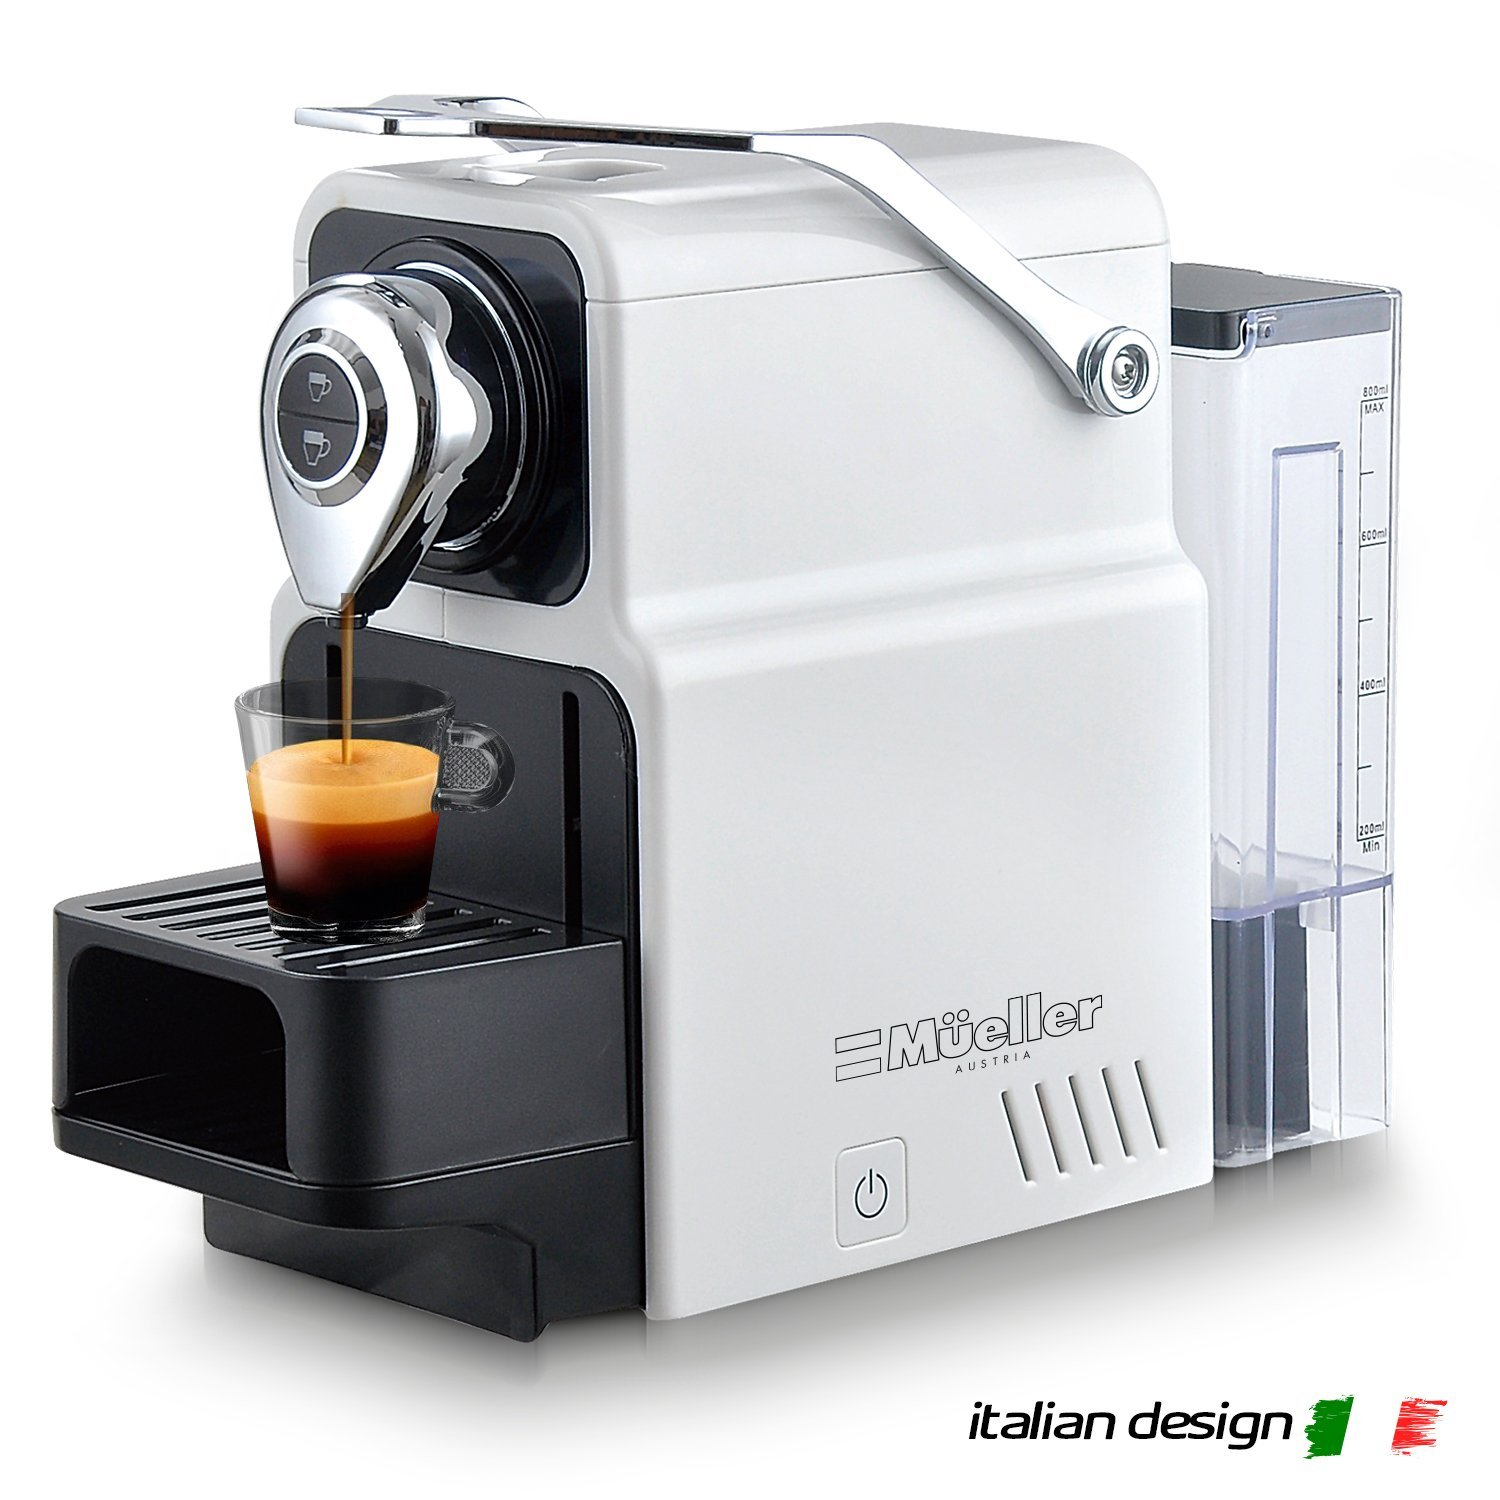 Mueller Espresso Machine for Nespresso Compatible Capsule, Premium Italian 20 Bar High Pressure Pump, 25s Fast Heating with Energy Saving System, Programmable Buttons for Espresso and Lungo, 1400W Mueller Austria